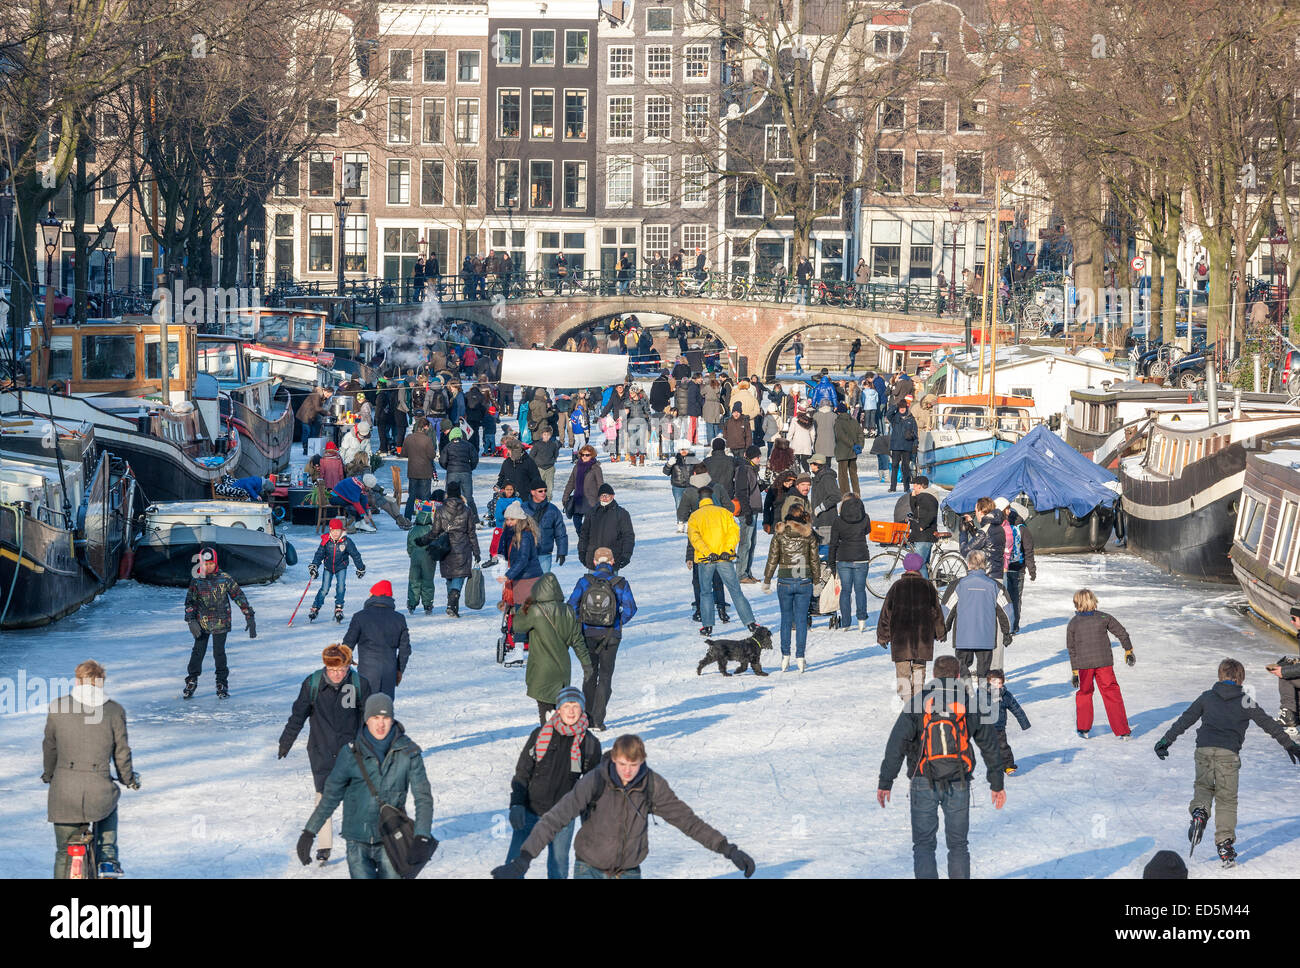 Amsterdam Ice Skating on a frozen Canal in winter. Keizersgracht and Brouwersgracht Canals - Stock Image